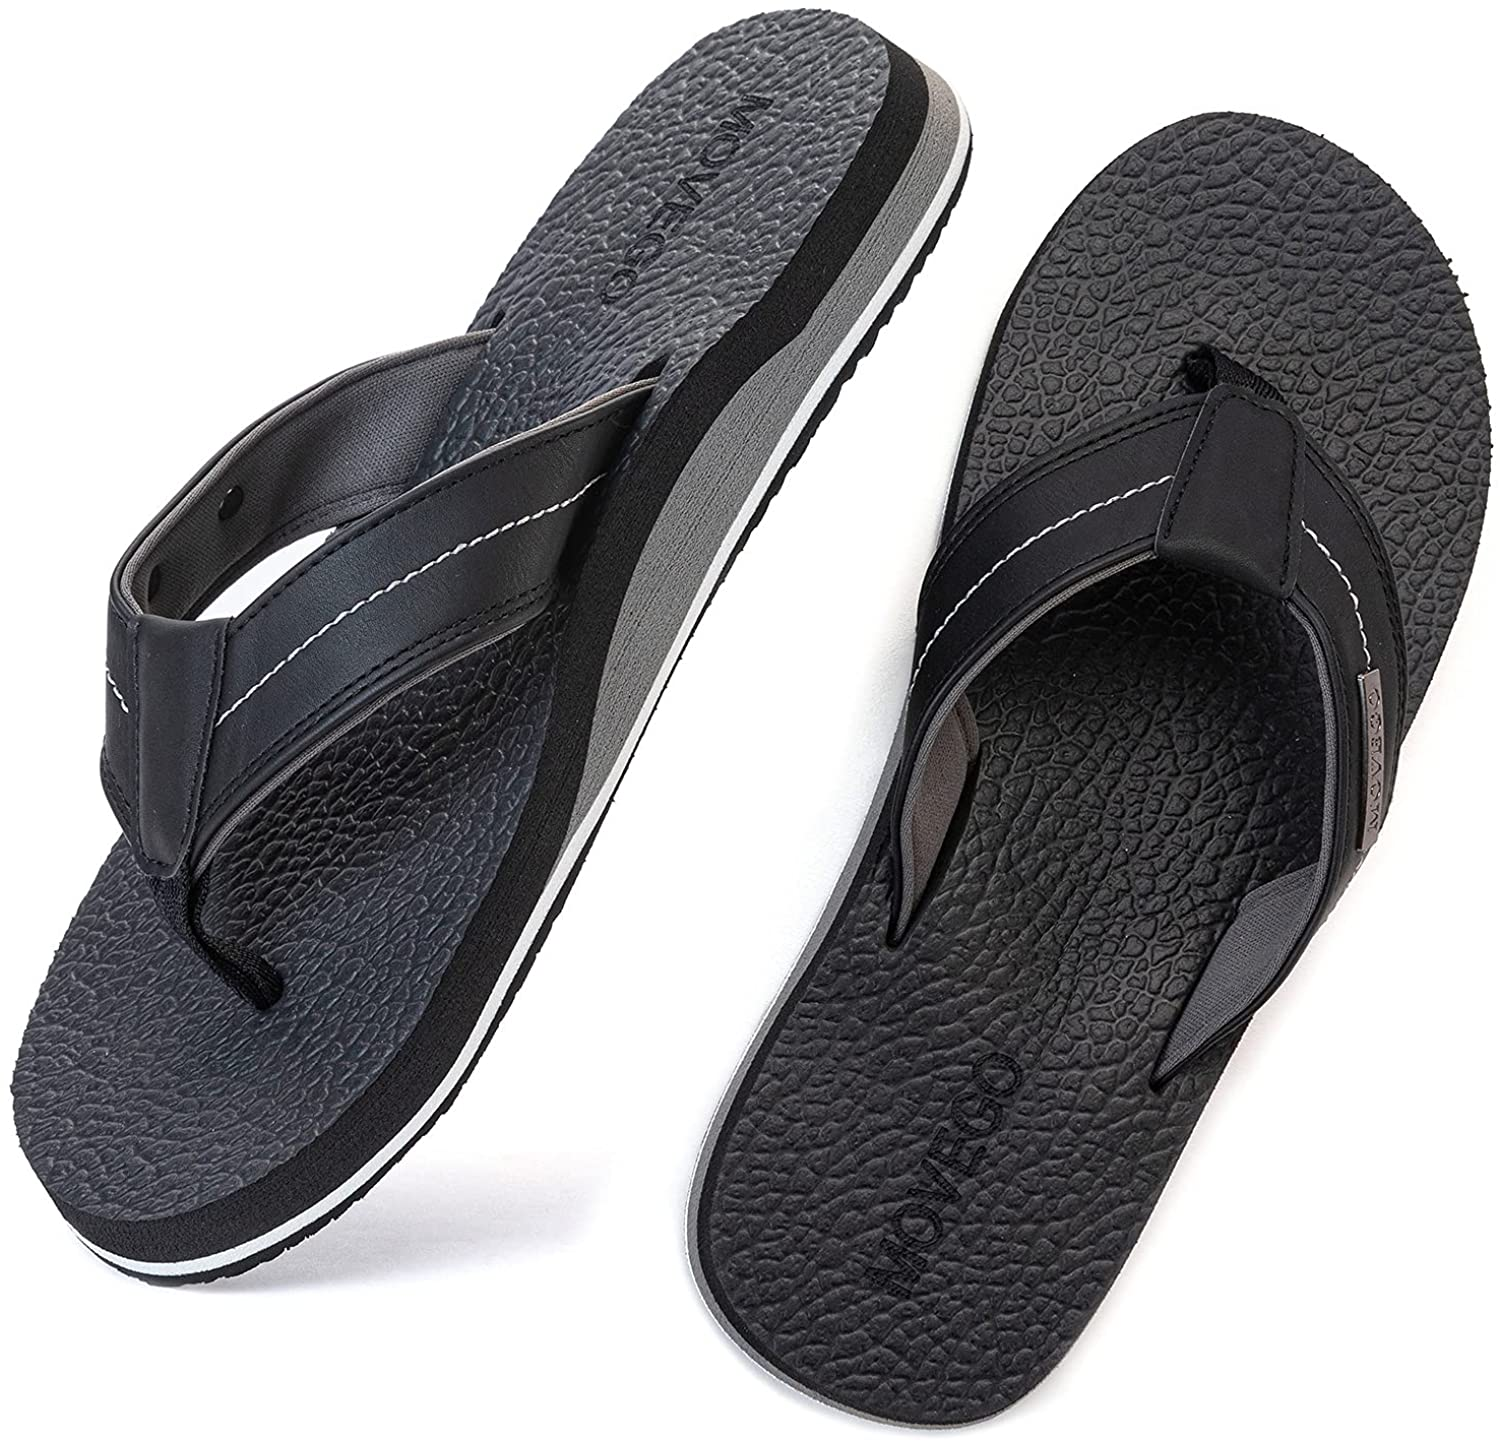 MOVEGO Flip Flops for Mens with Arch Support Sandals Wide Comfort Yoga Mat Footbed Summer Outdoor Non Slip Thong Sandals